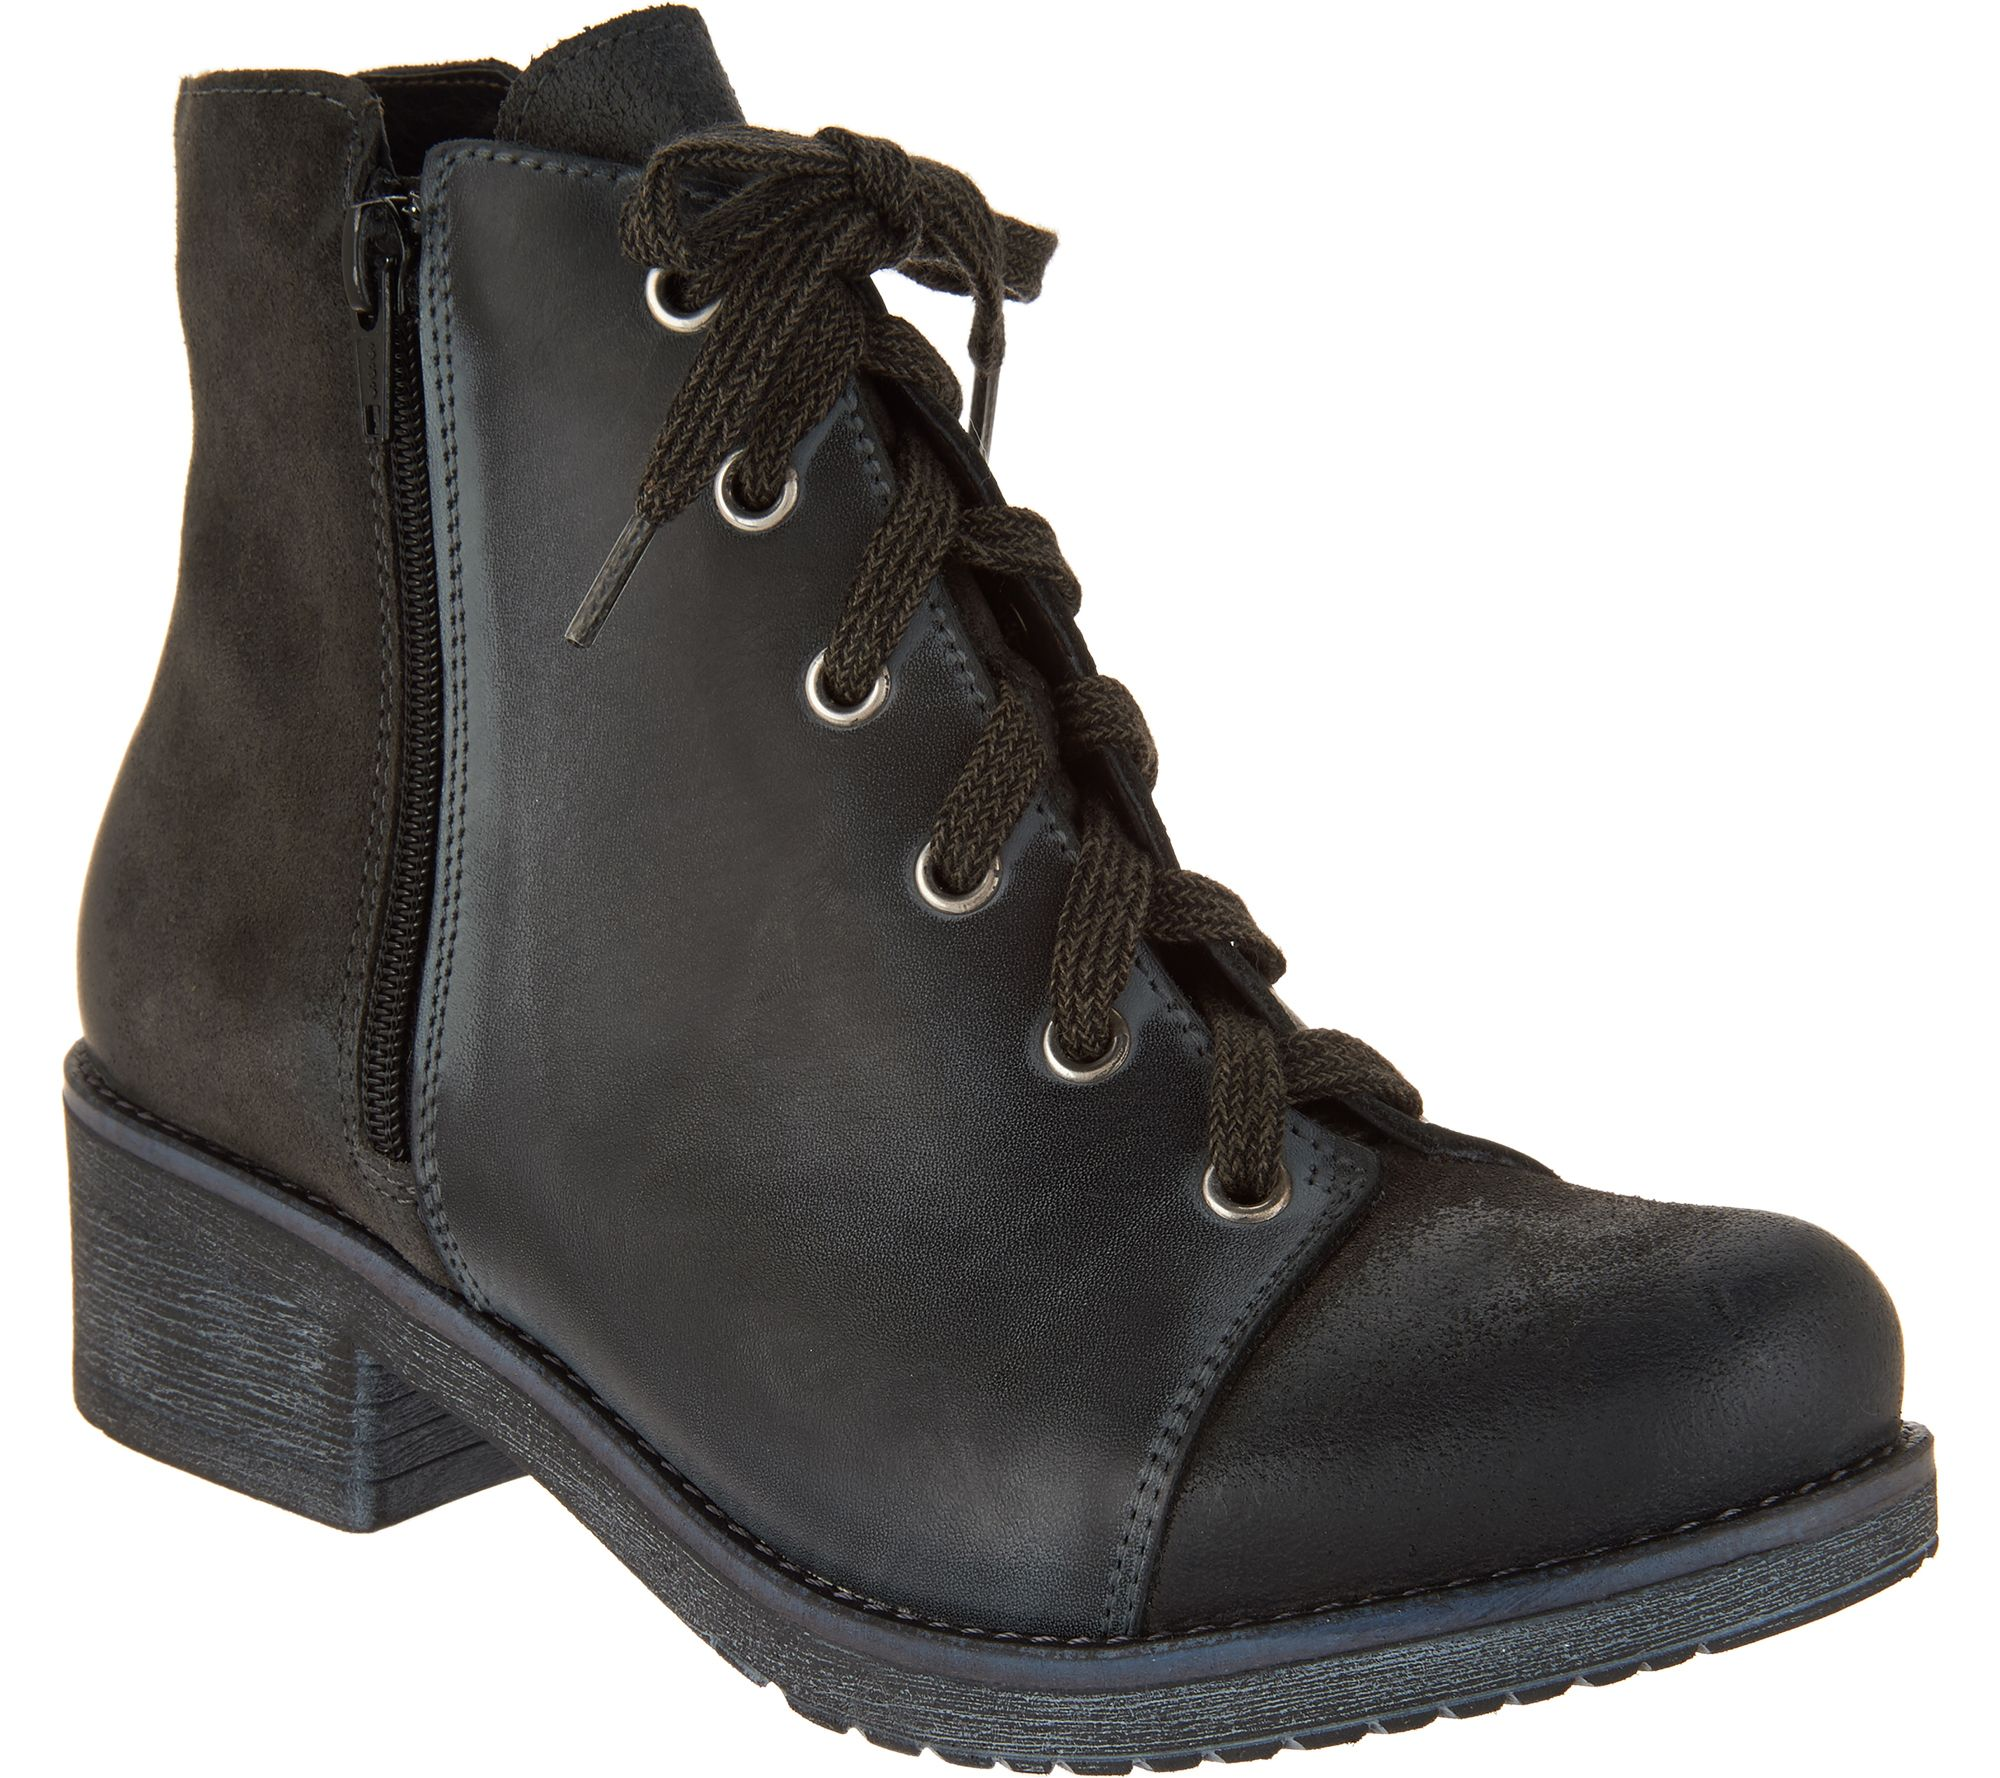 9883b817b56e2 Naot Leather and Suede Lace-up Ankle Boots - Groovy - Page 1 — QVC.com